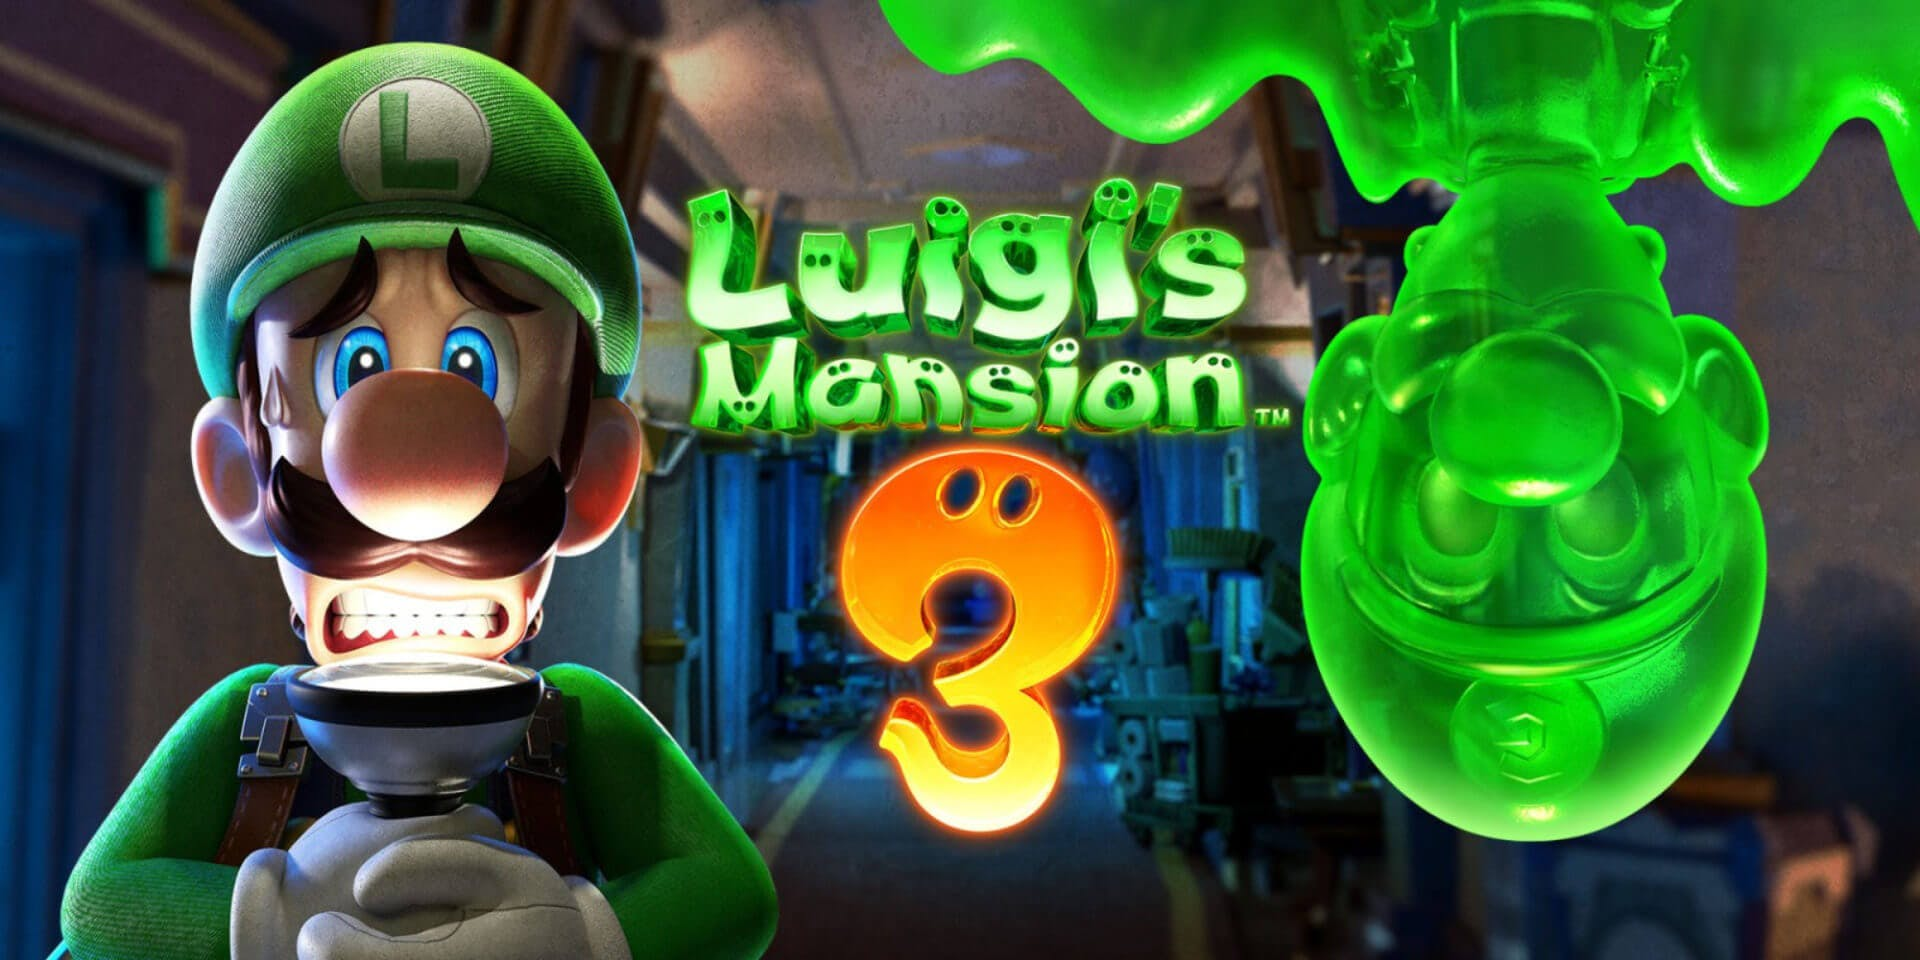 upcoming video games october 2019 luigi's mansion 3